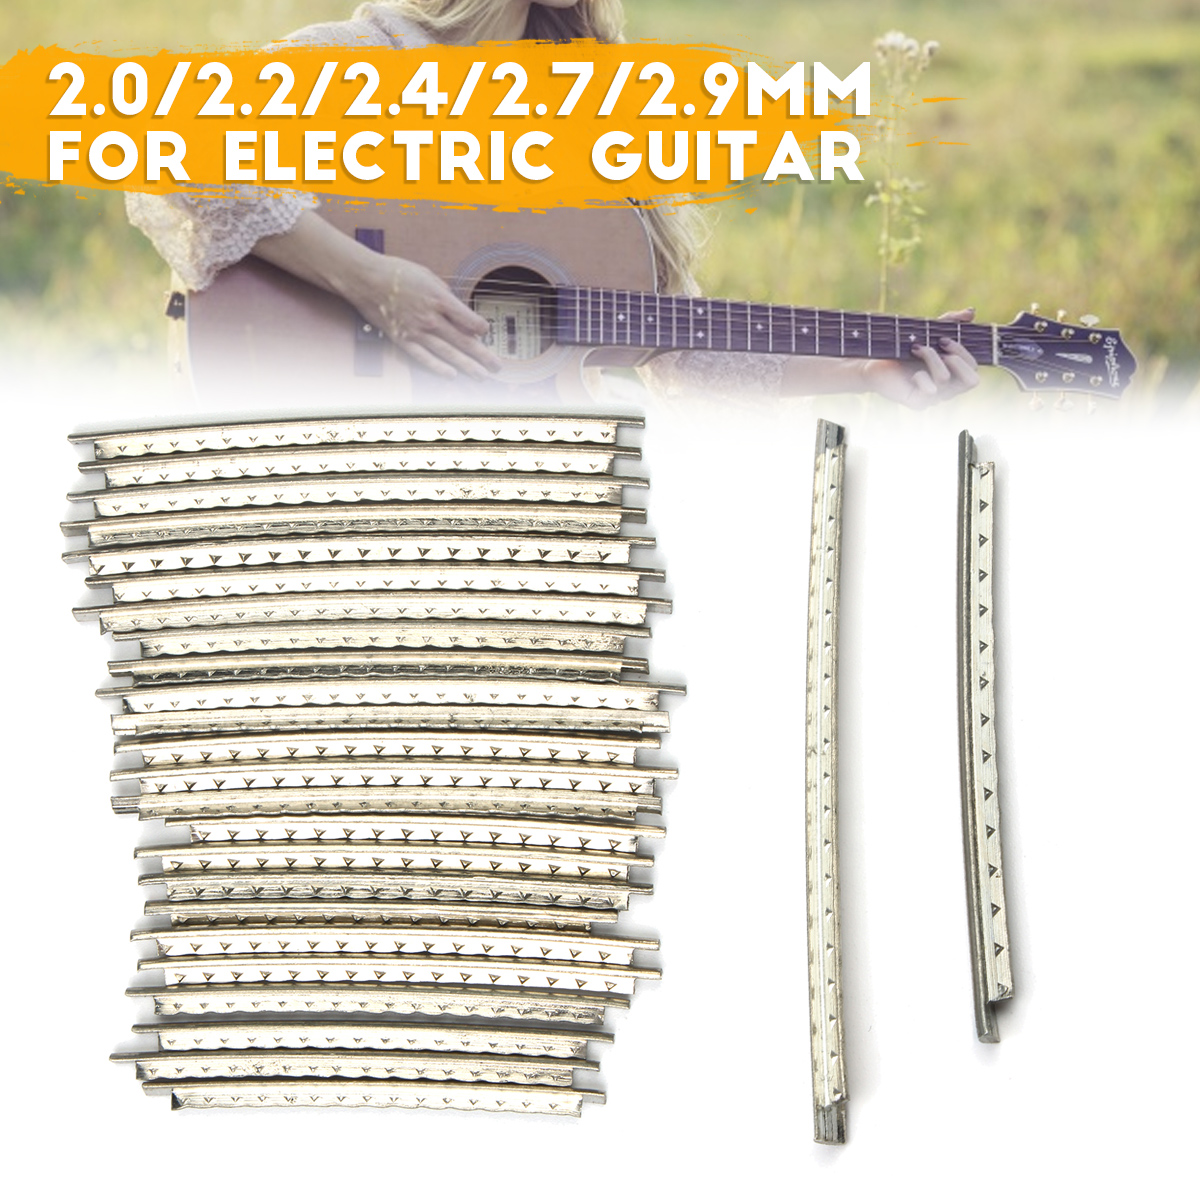 Timiy Carbon Steel Nut File Set Guitar Double Sided Gauged Nut Slotting File S